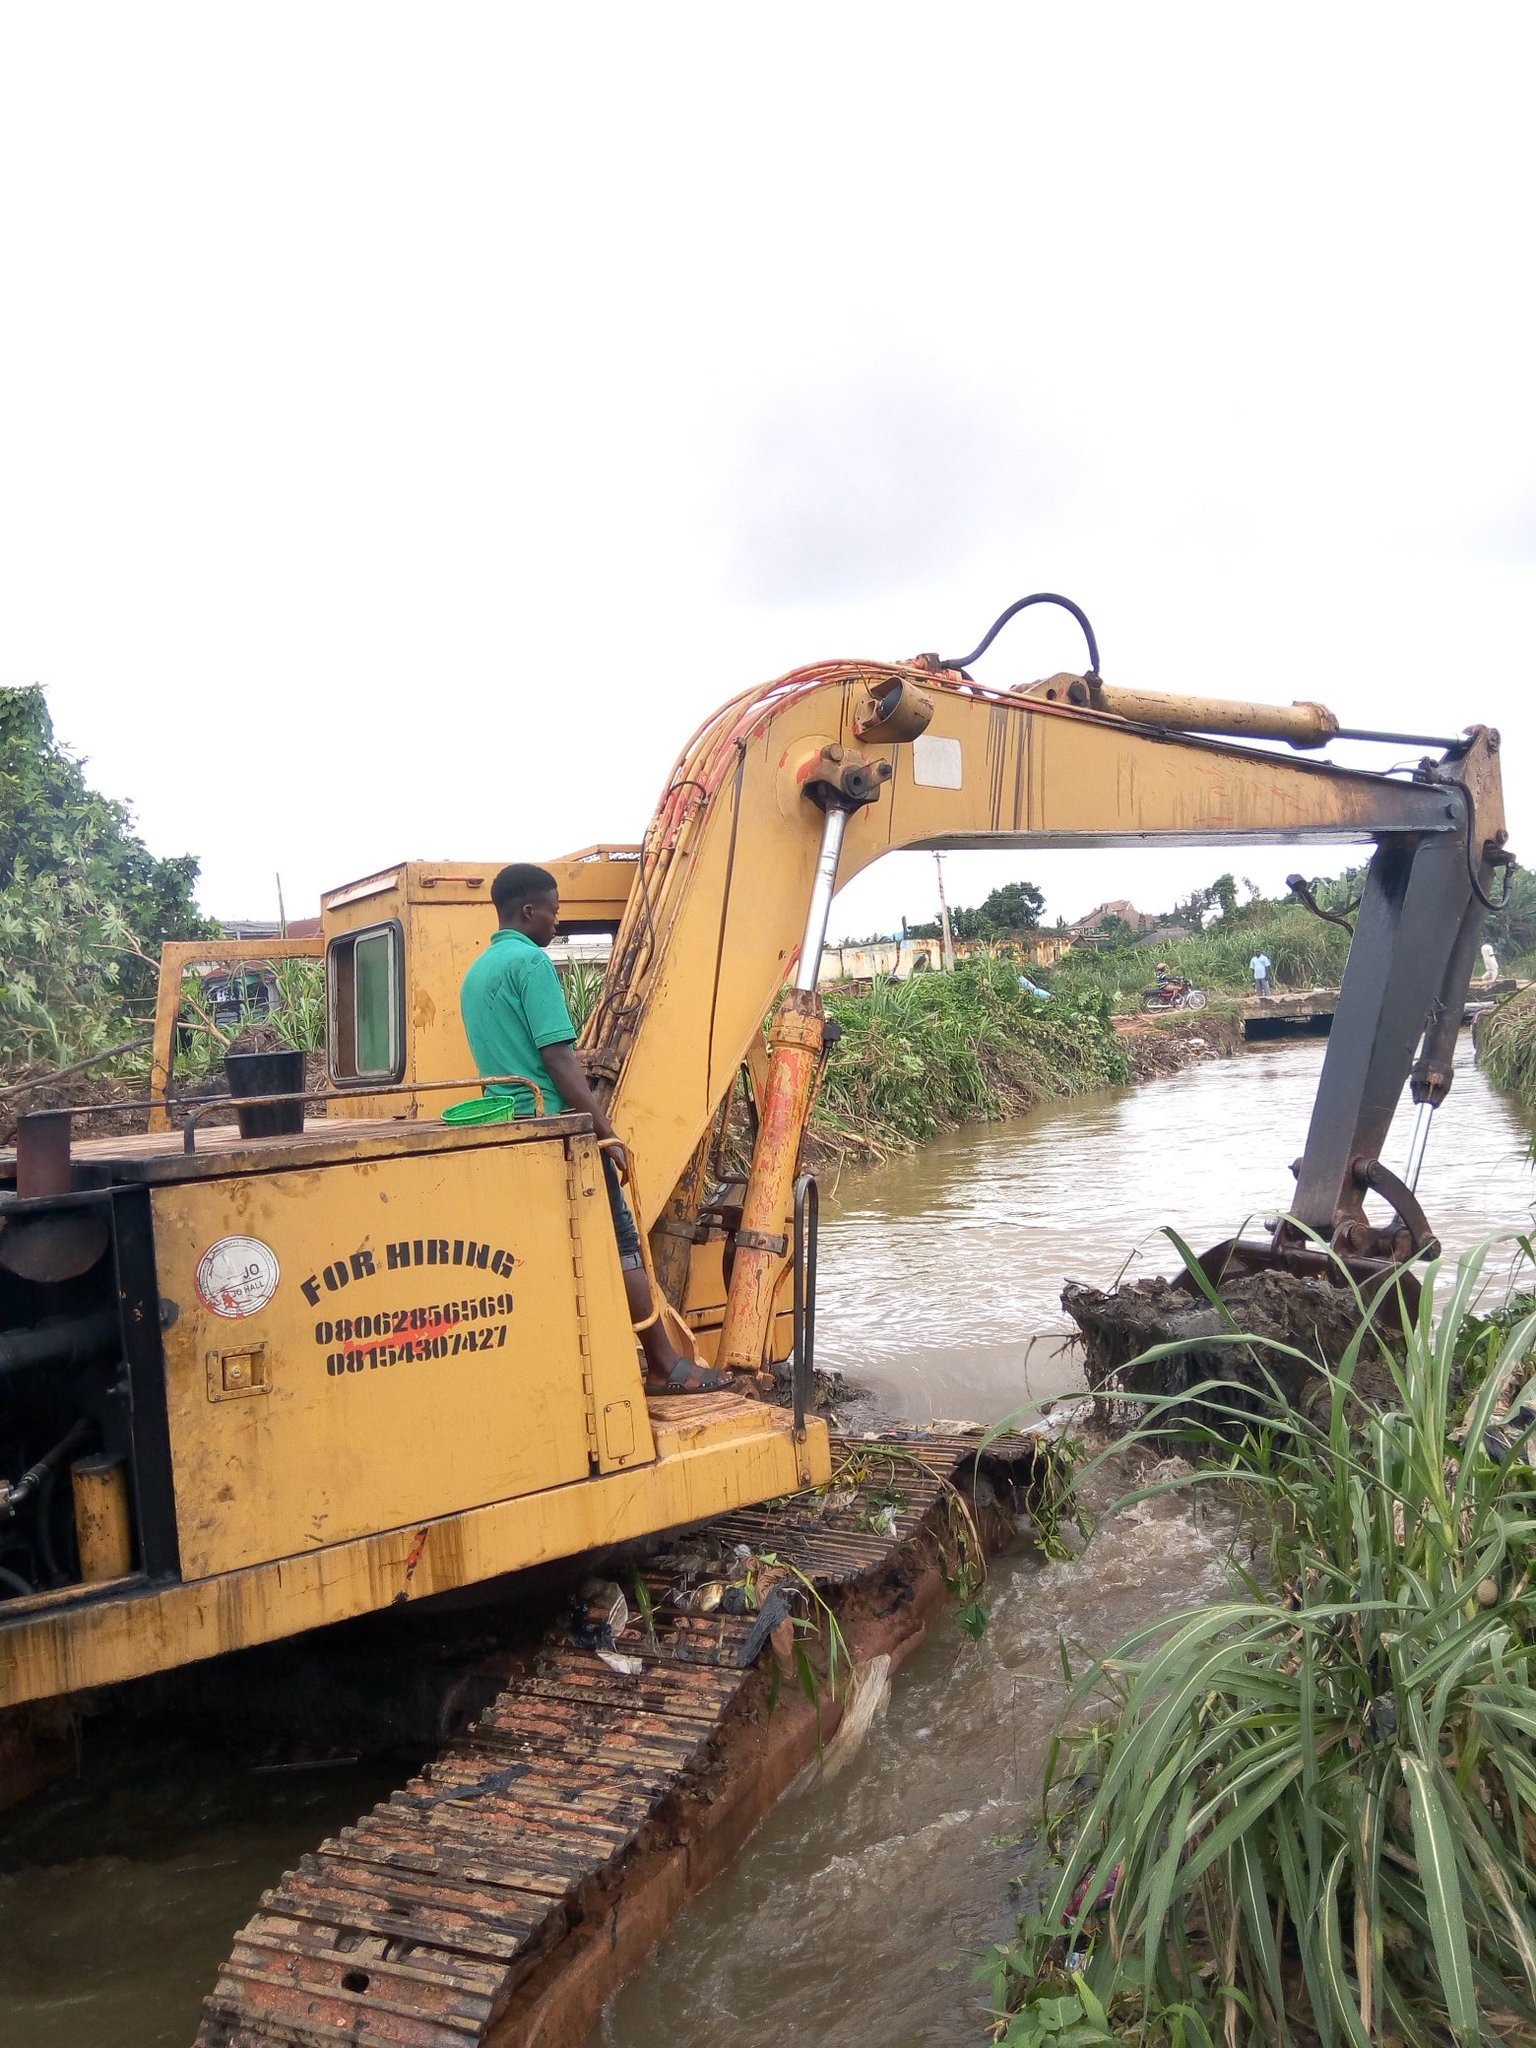 Osun Residents Laud Govt Efforts As Dredging Machines Moves To Flooded Areas